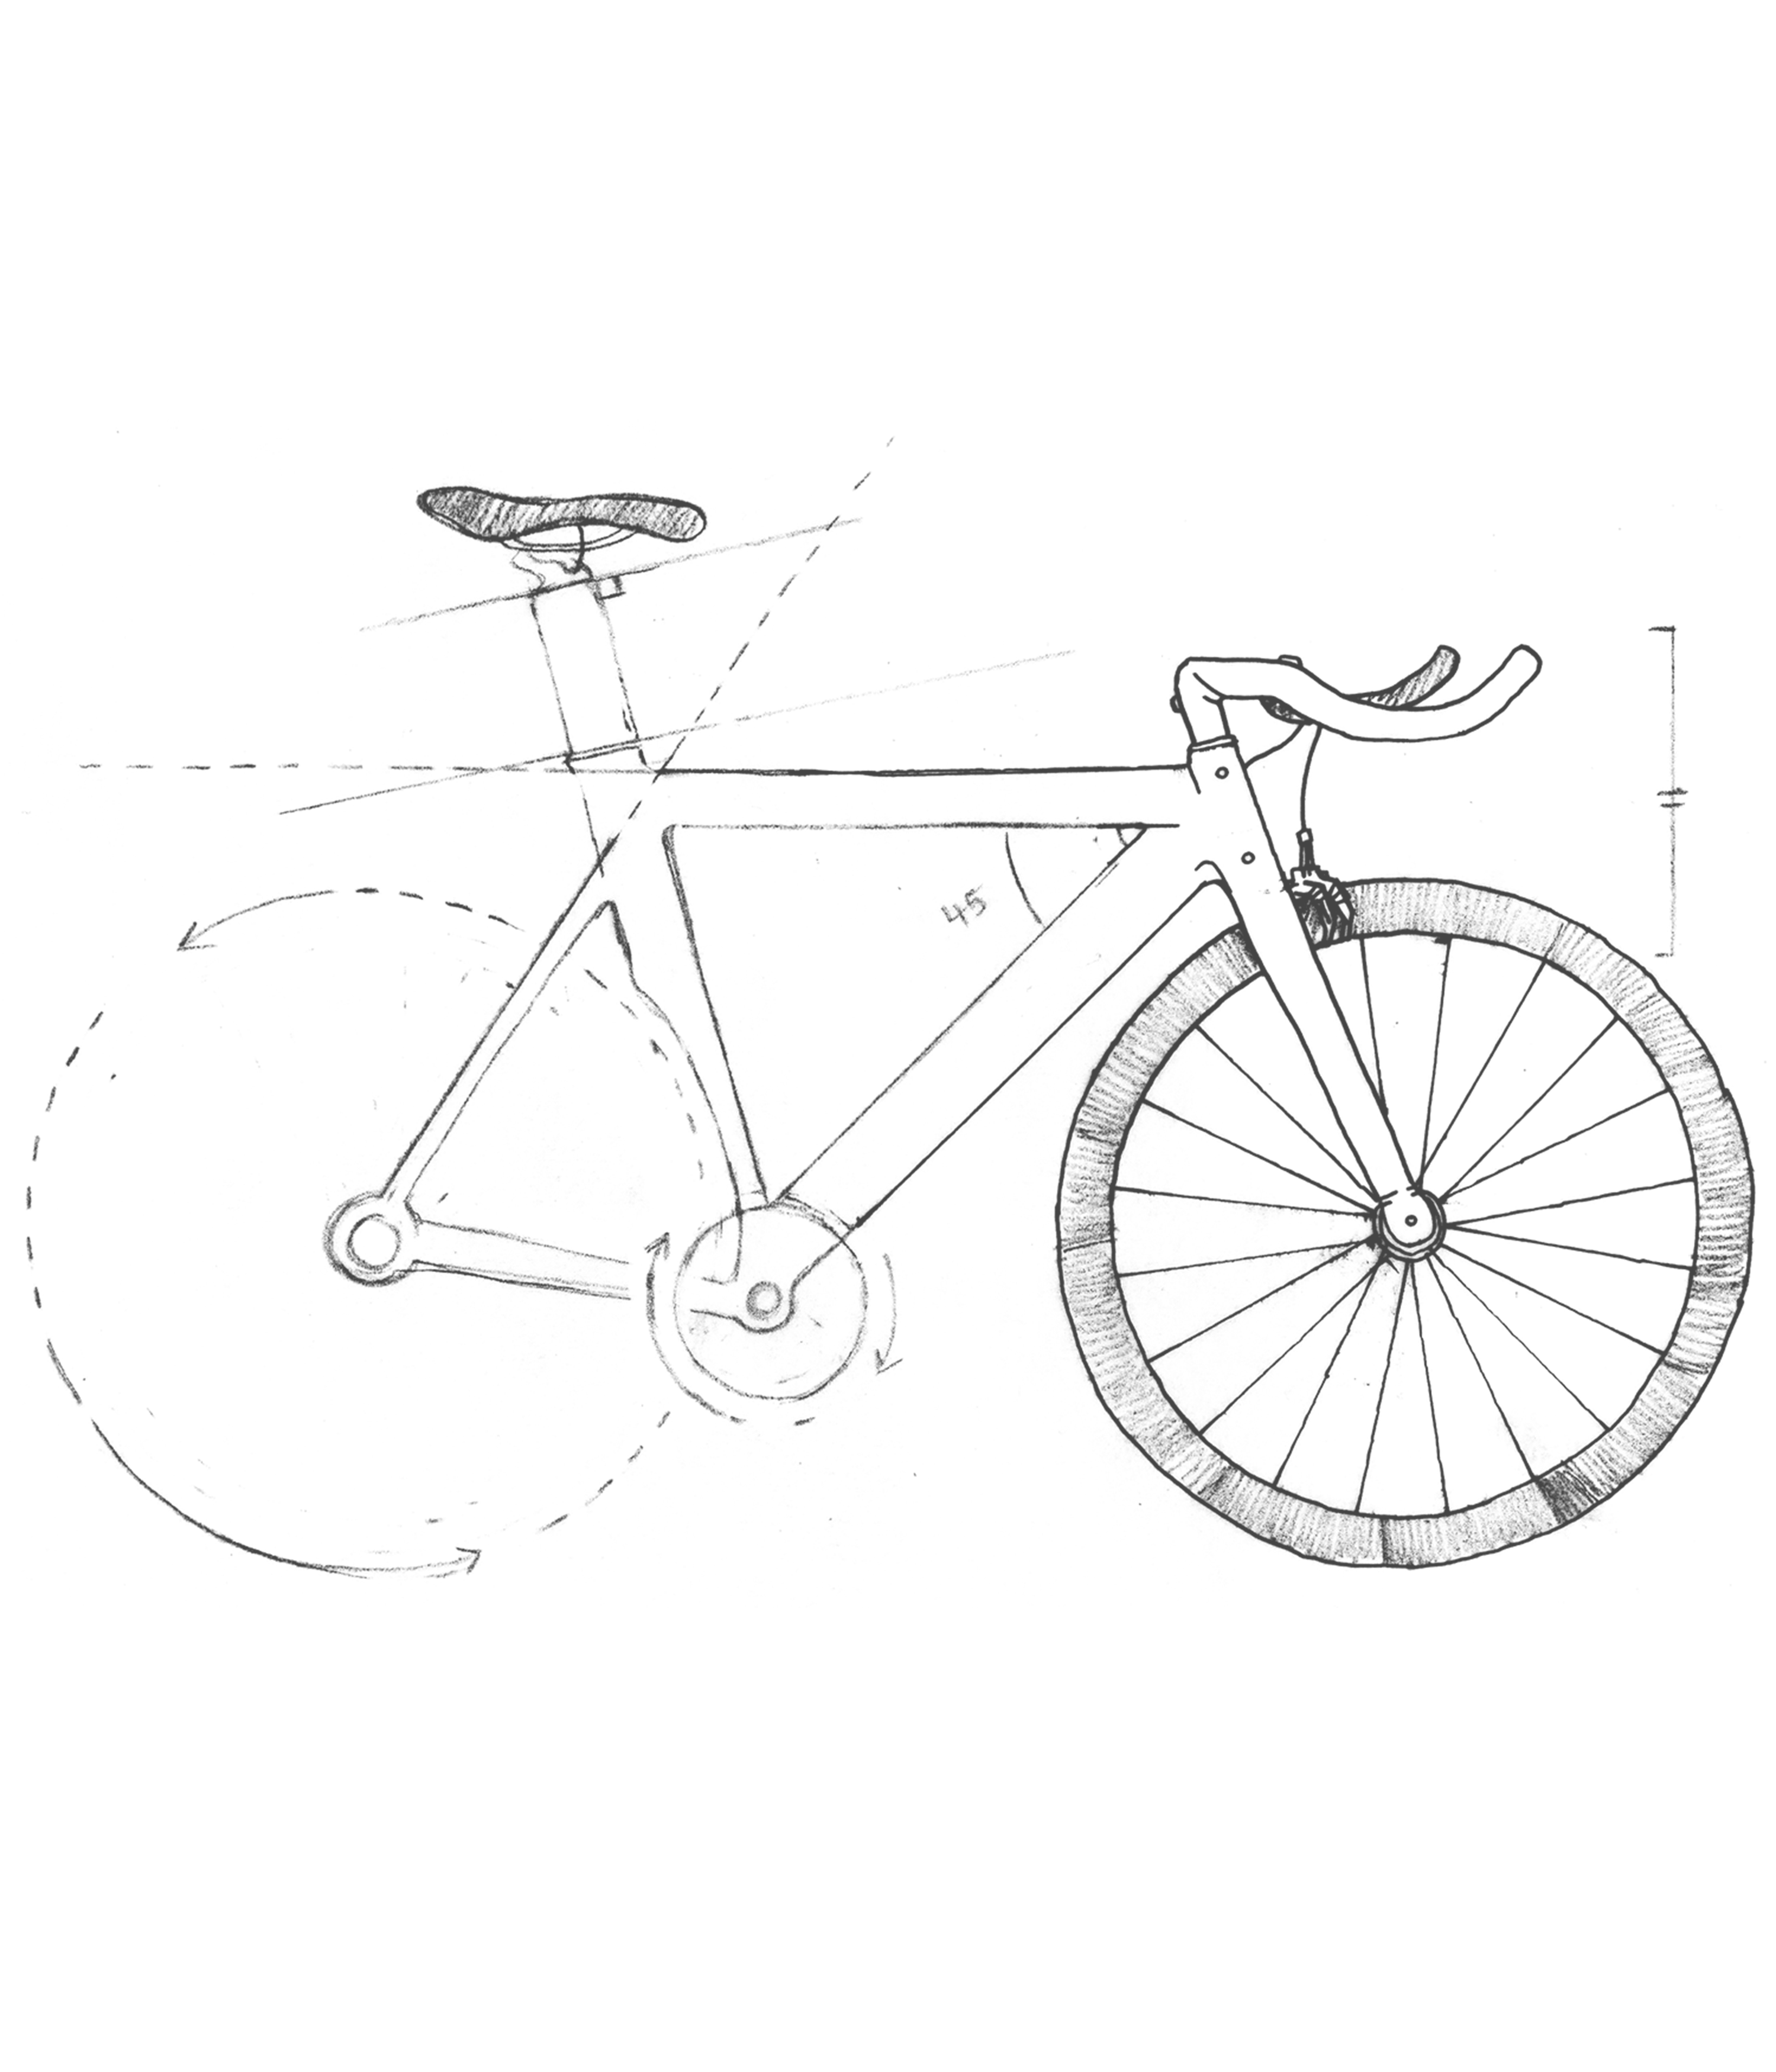 A blueprint sketch of a bicycle